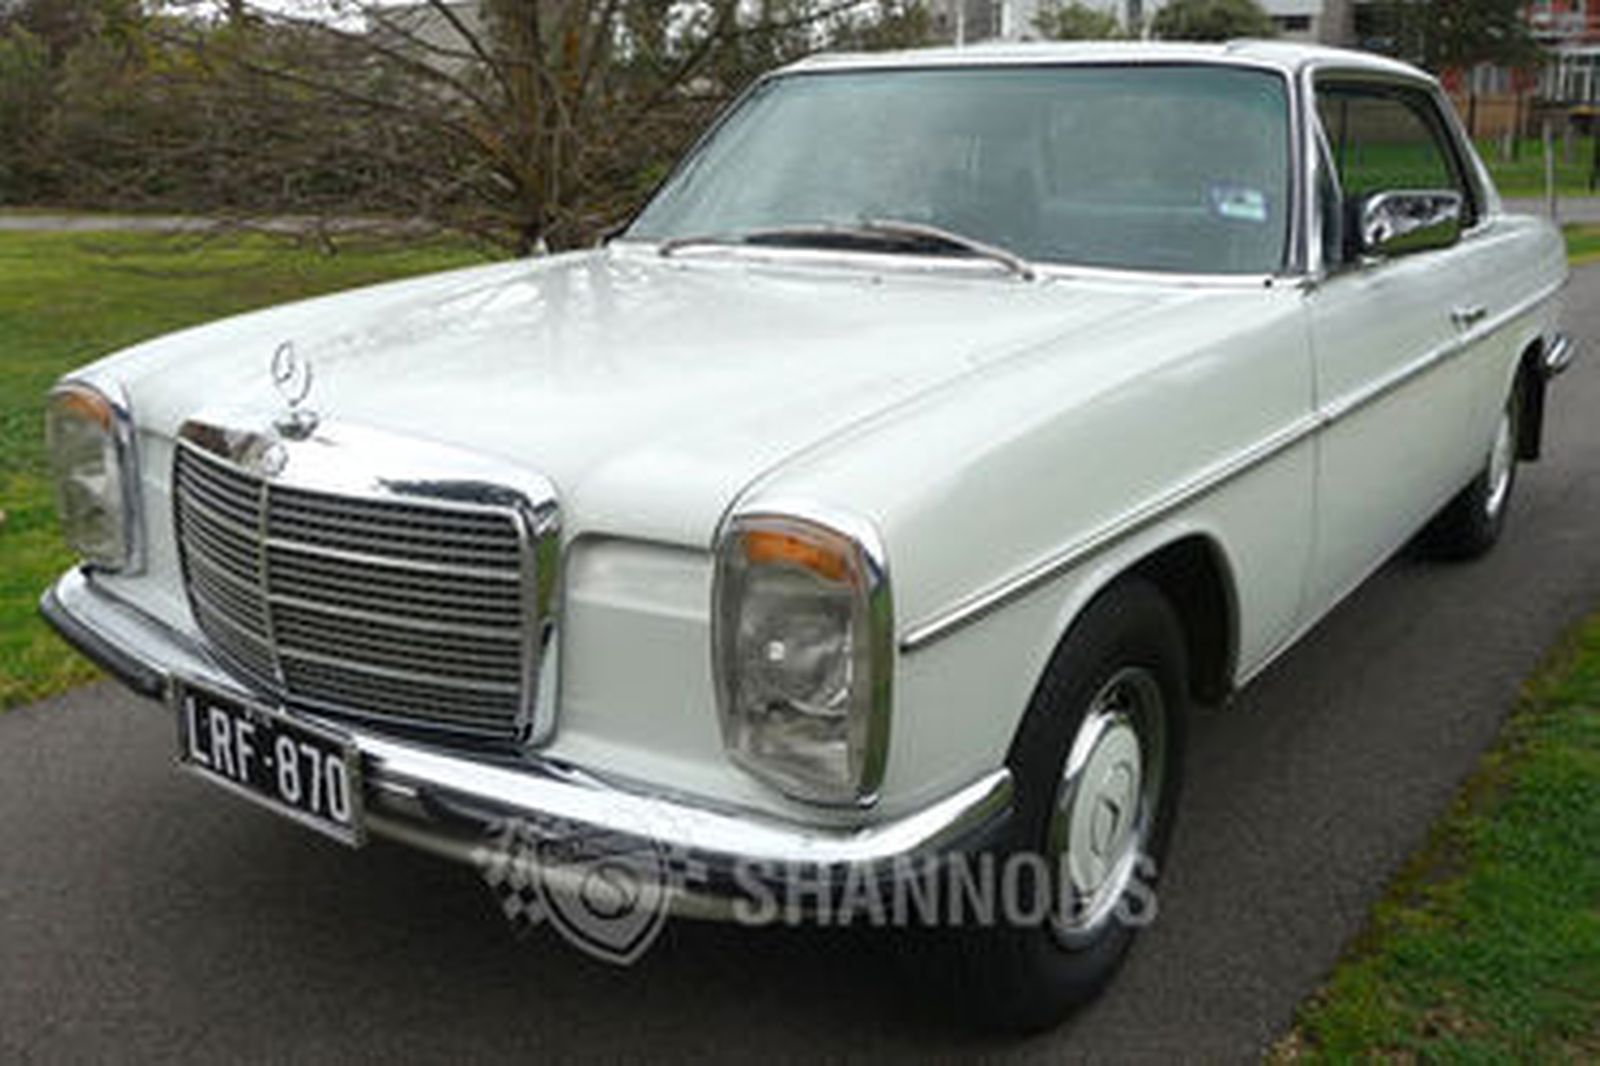 Sold mercedes benz 250c coupe auctions lot 25 shannons for Mercedes benz 250c